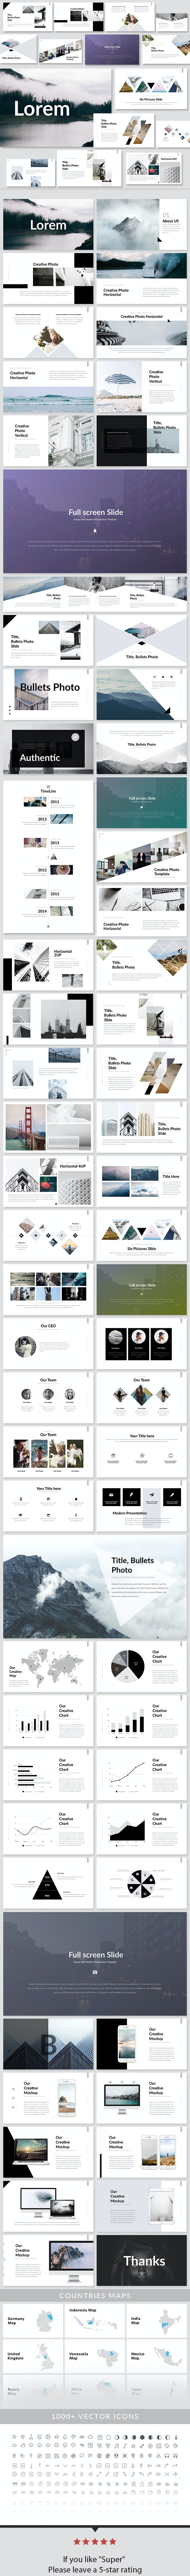 Lorem - Keynote Presentation Template - Creative Keynote Templates